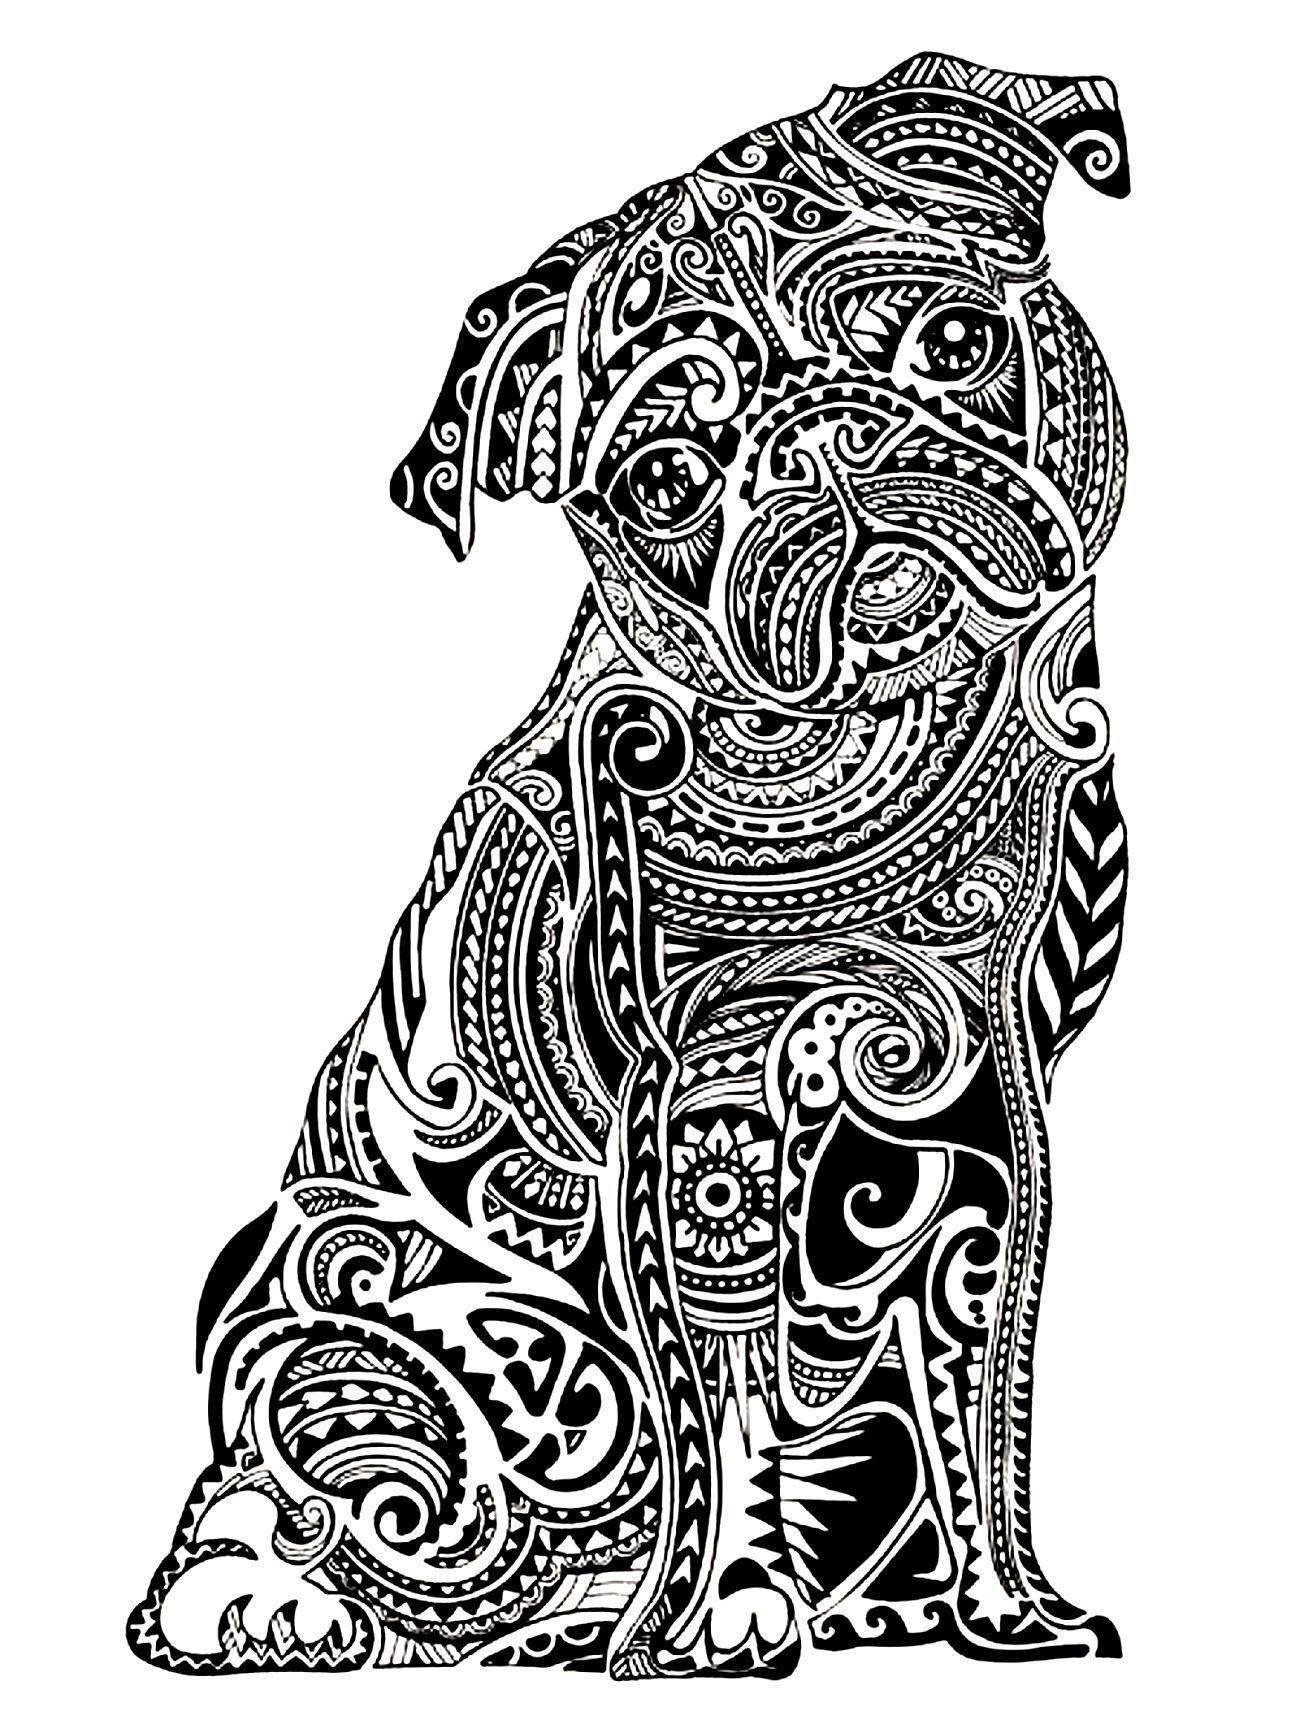 Get the coloring page: Pug | 50 Printable Adult Colouring Pages ...